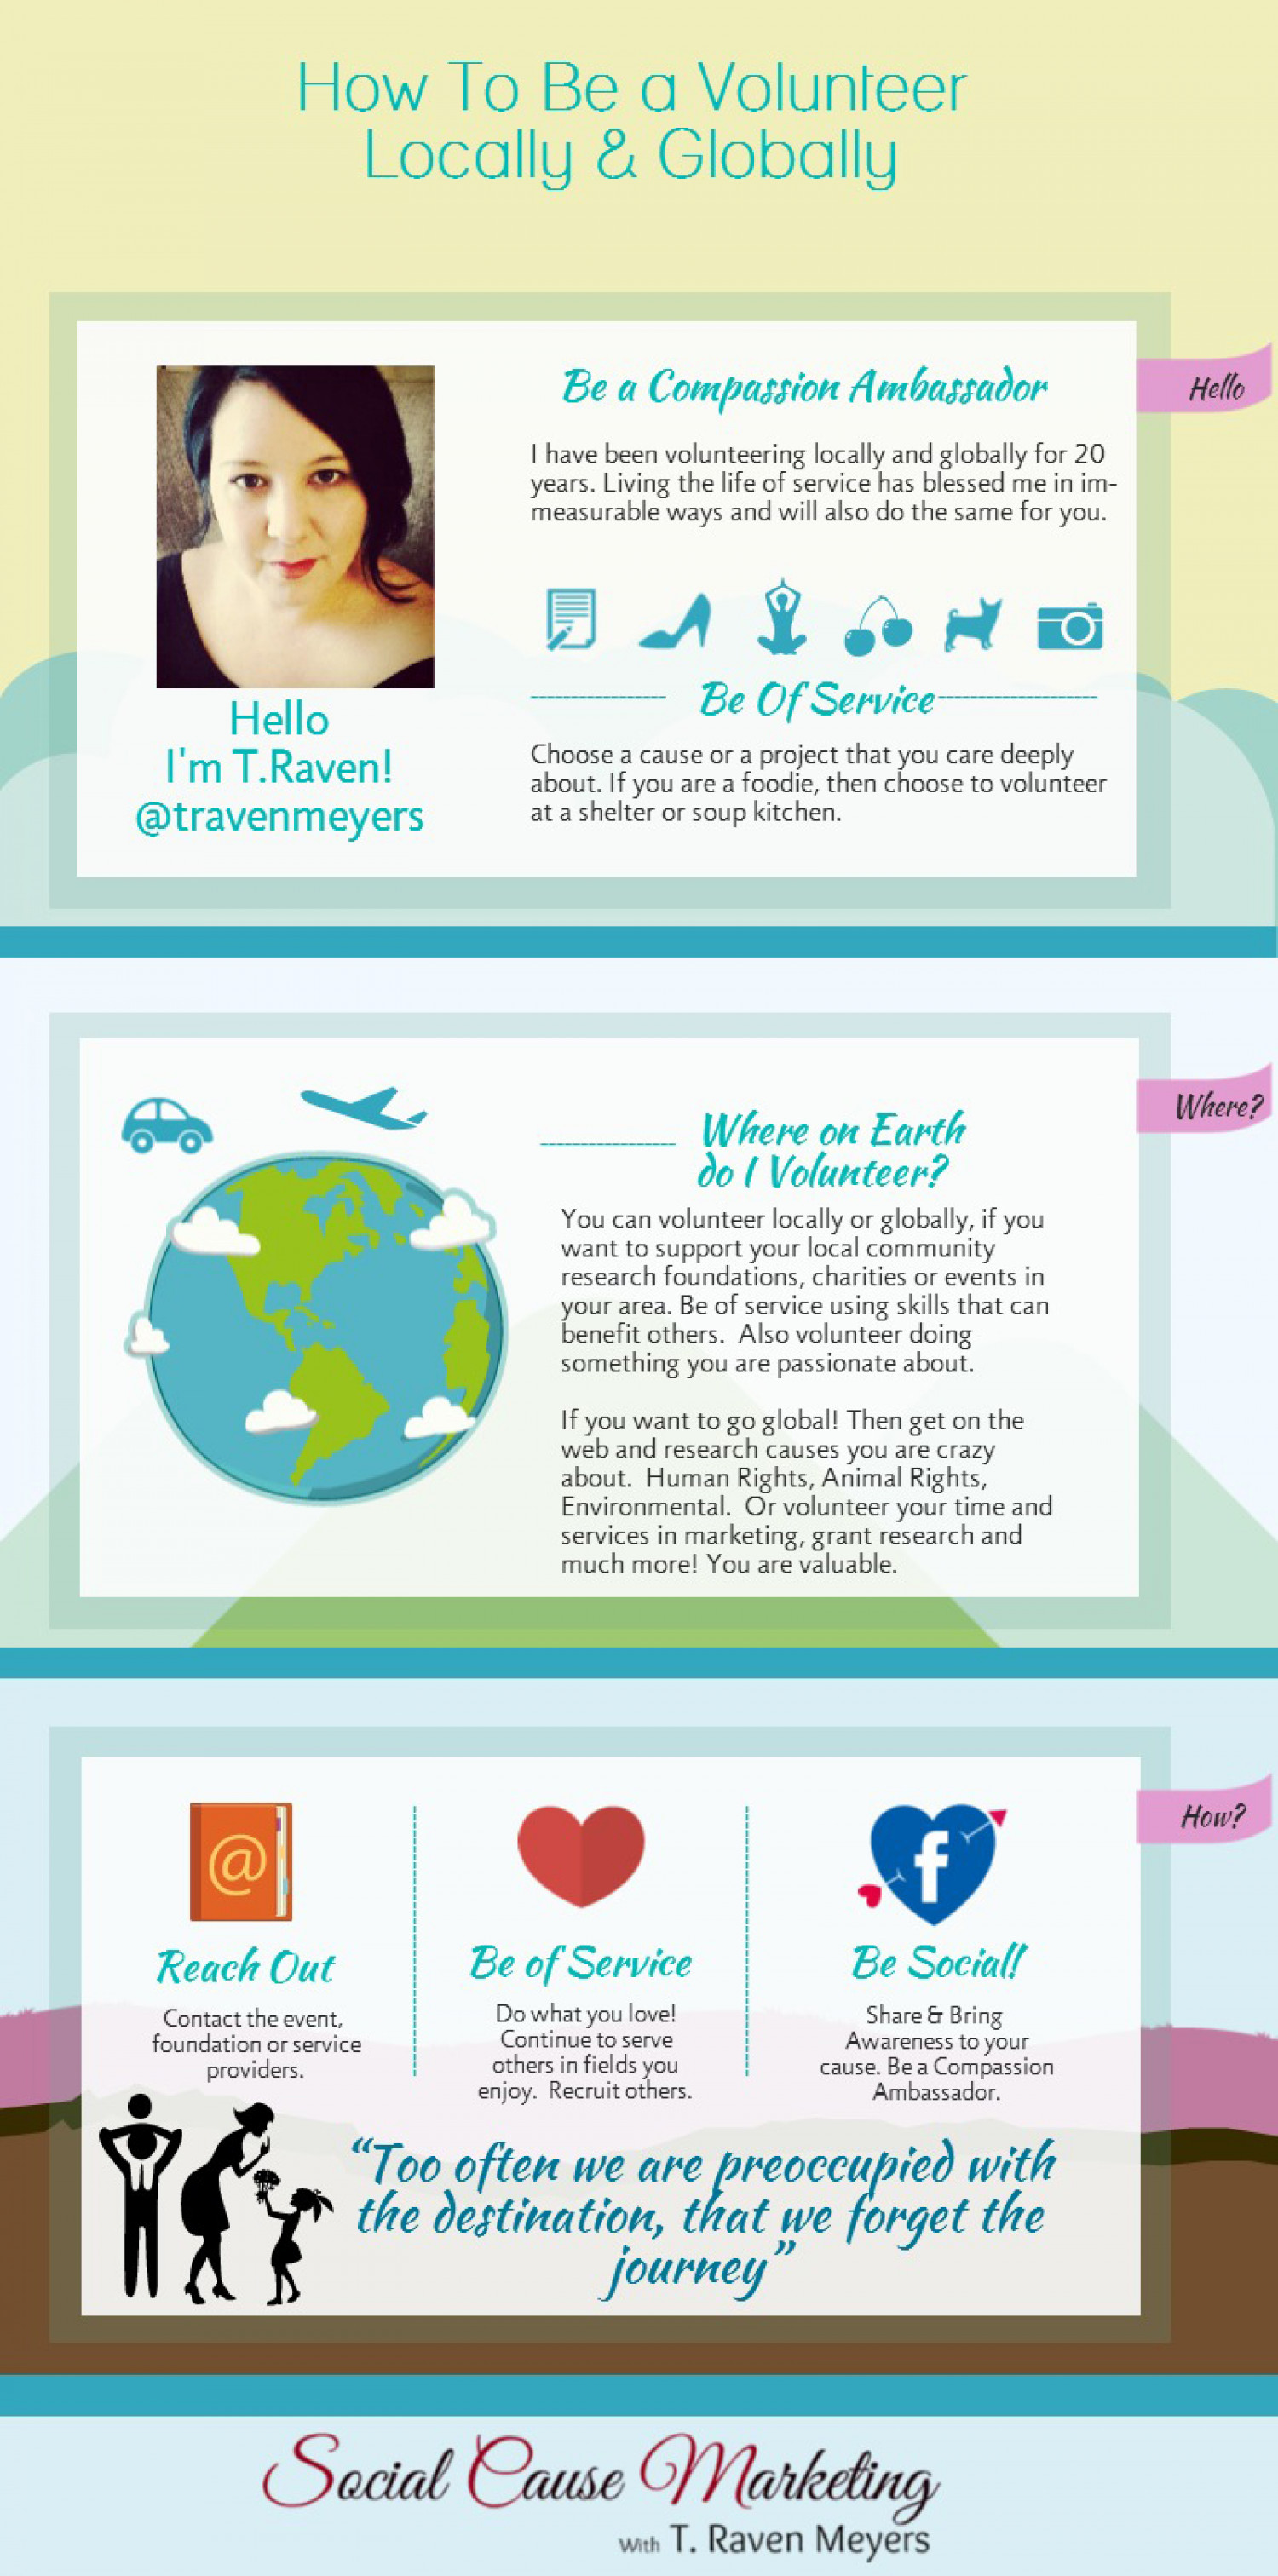 How to Become a Volunteer Locally & Globally Infographic